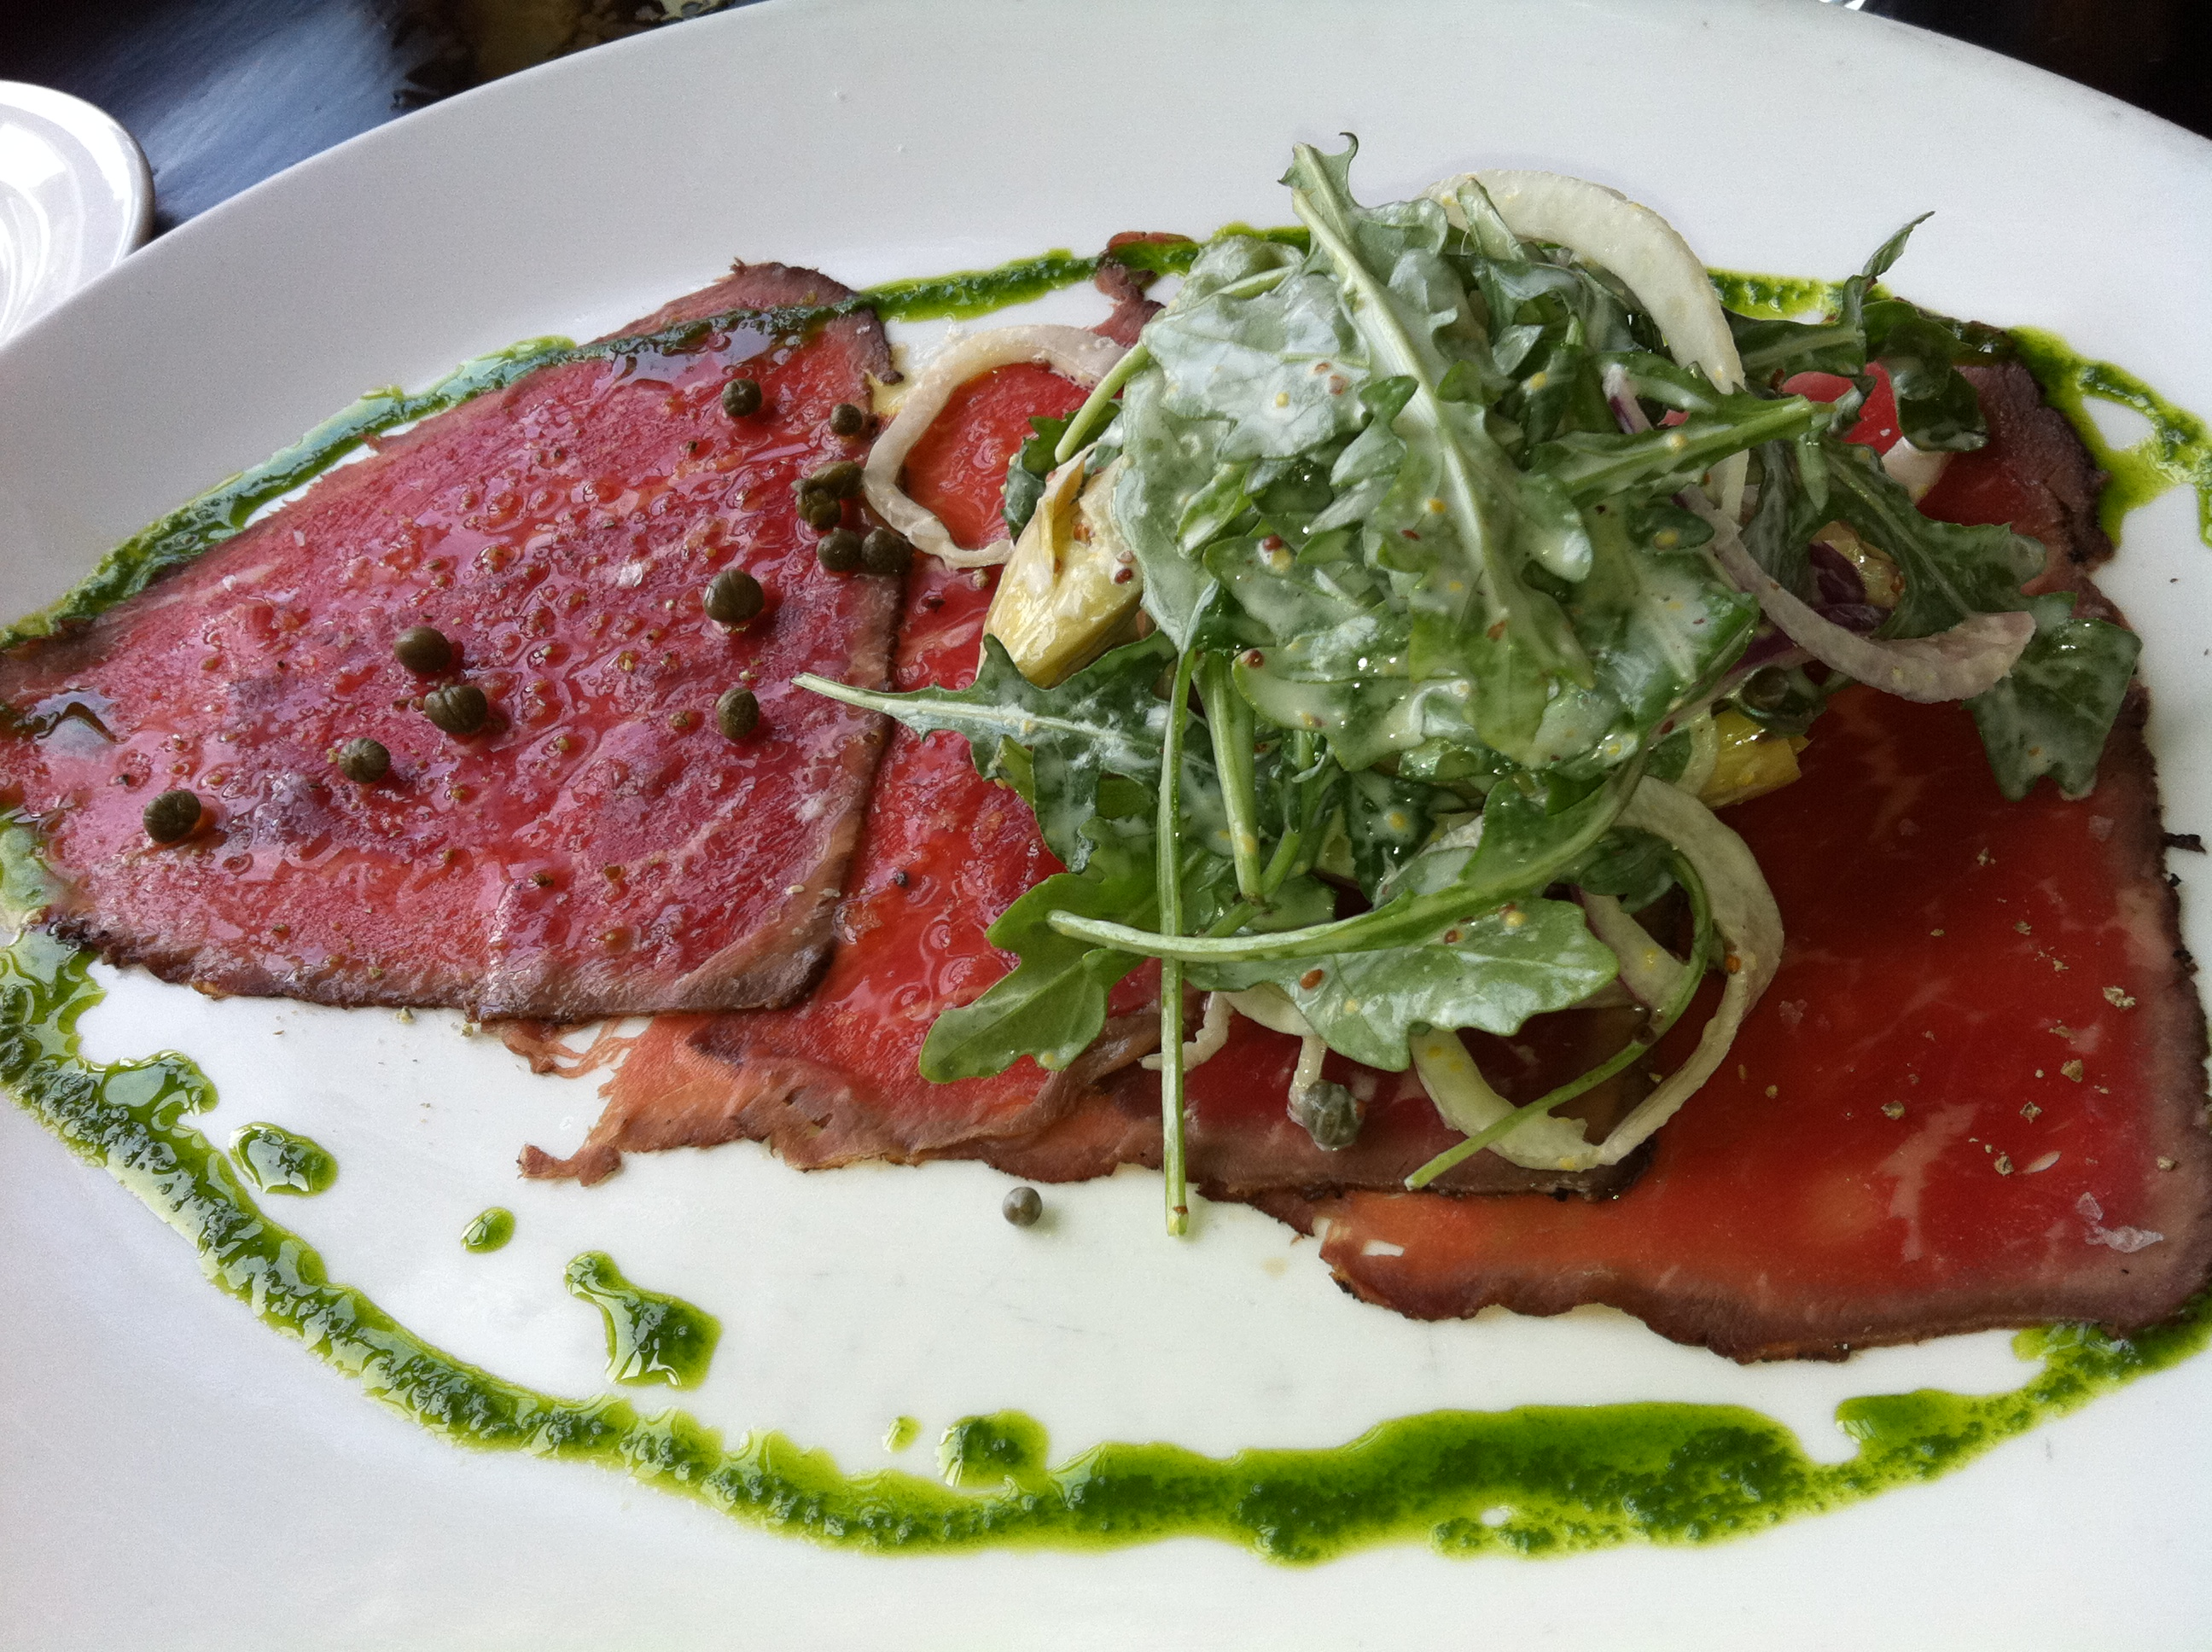 Beef carpaccio | Matt on Not-WordPress